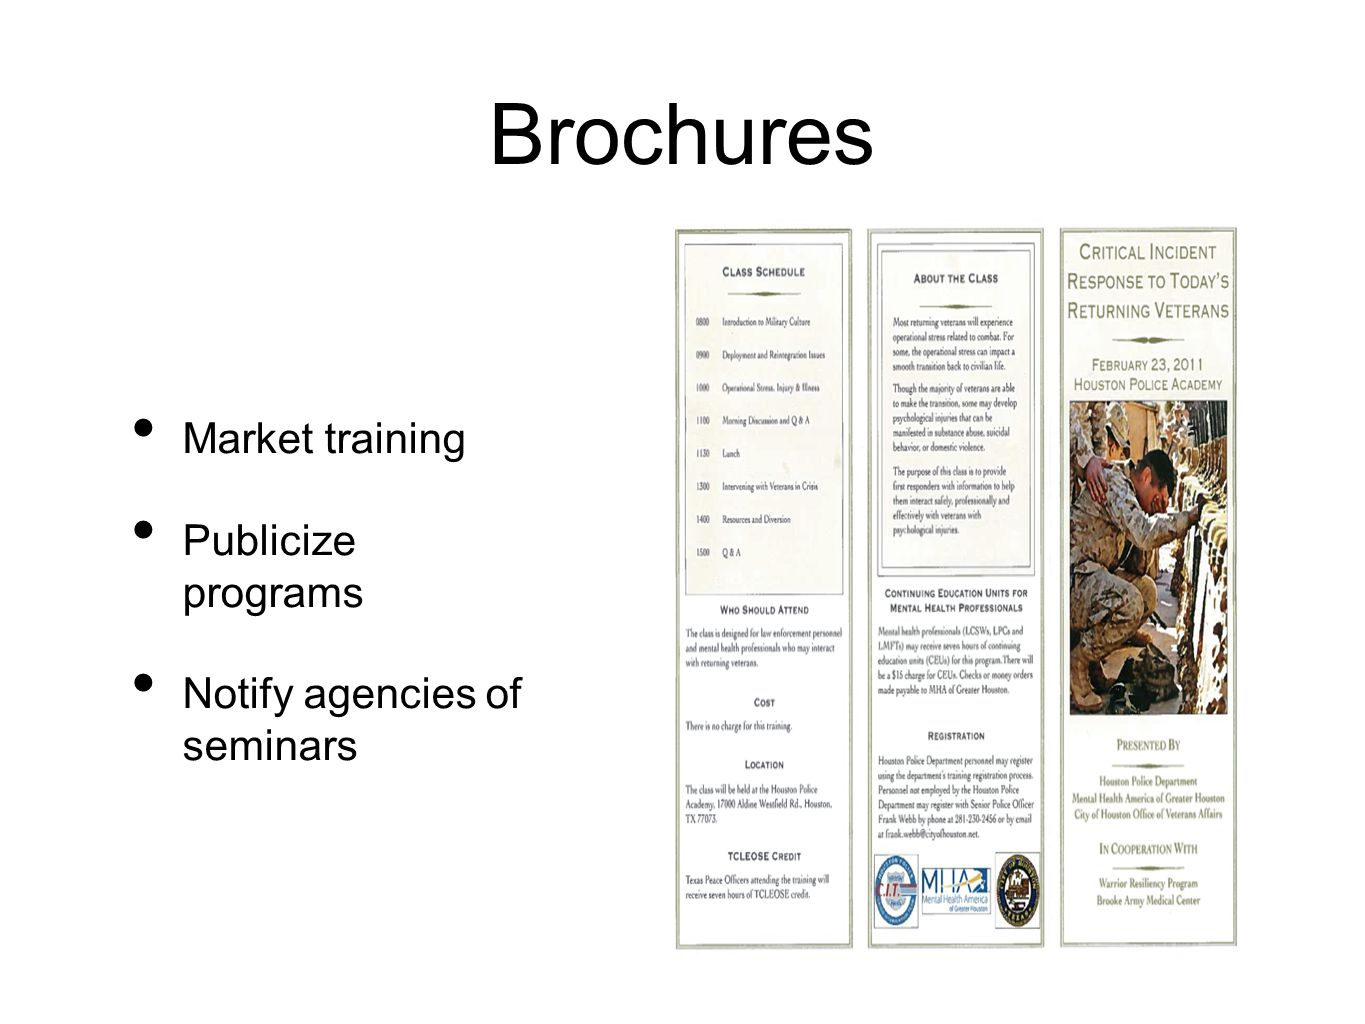 Brochures Market training Publicize programs Notify agencies of seminars